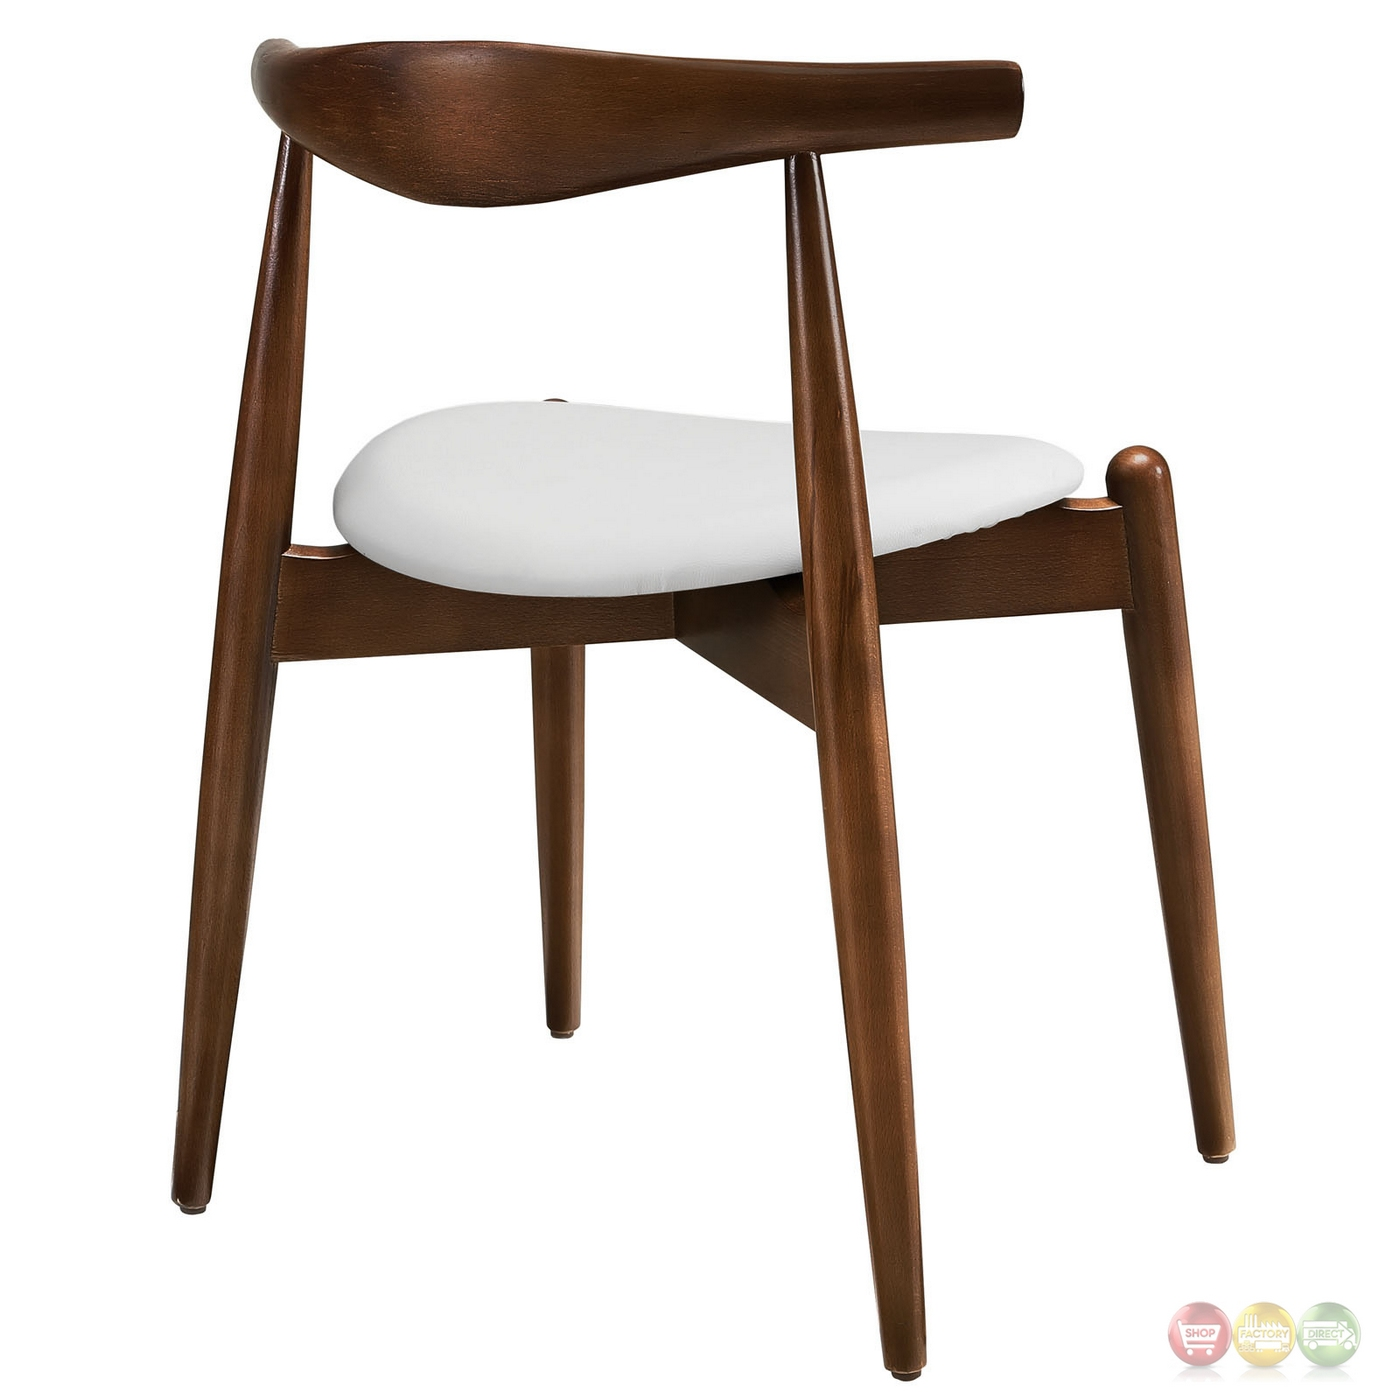 stalwart contemporary solid wood dining side chair with vinyl cushion dark walnut white. Black Bedroom Furniture Sets. Home Design Ideas